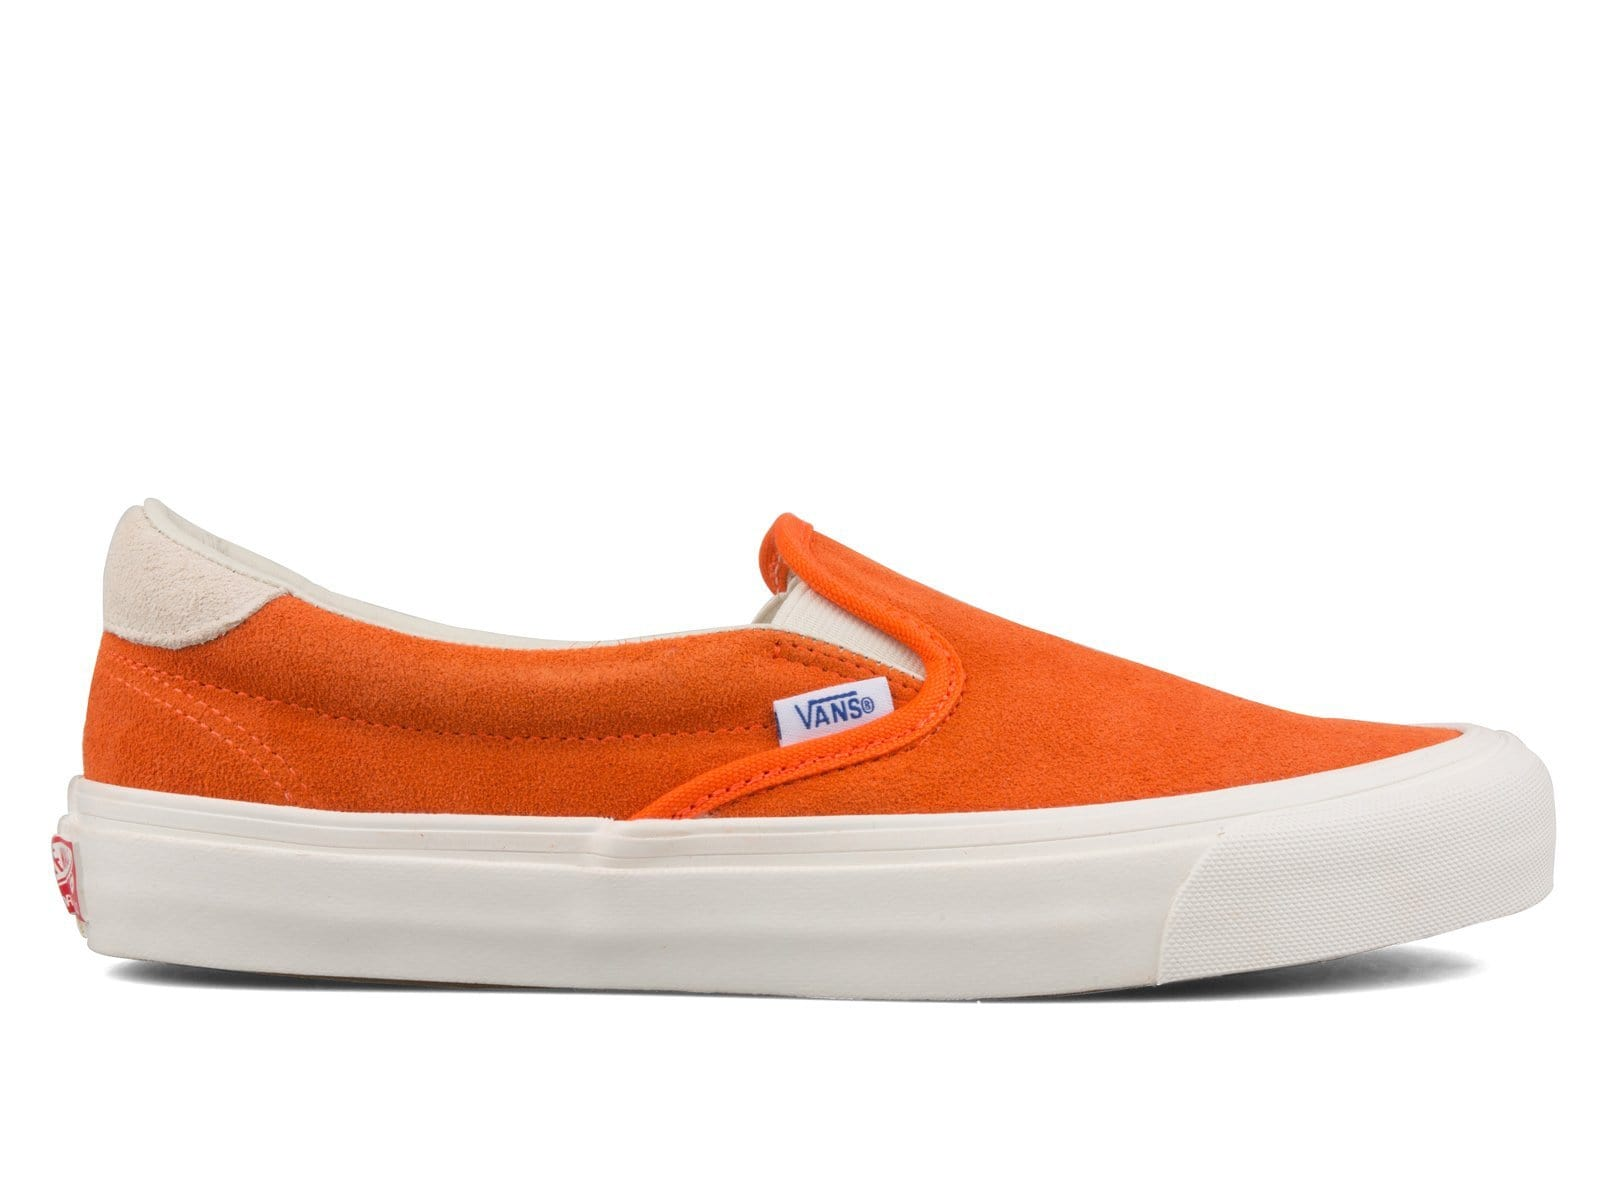 f127490b554 VANS OG SLIP-ON 59 LX SUEDE RED ORANGE MARSHMALLOW 8 - 1.jpg v 1525714258